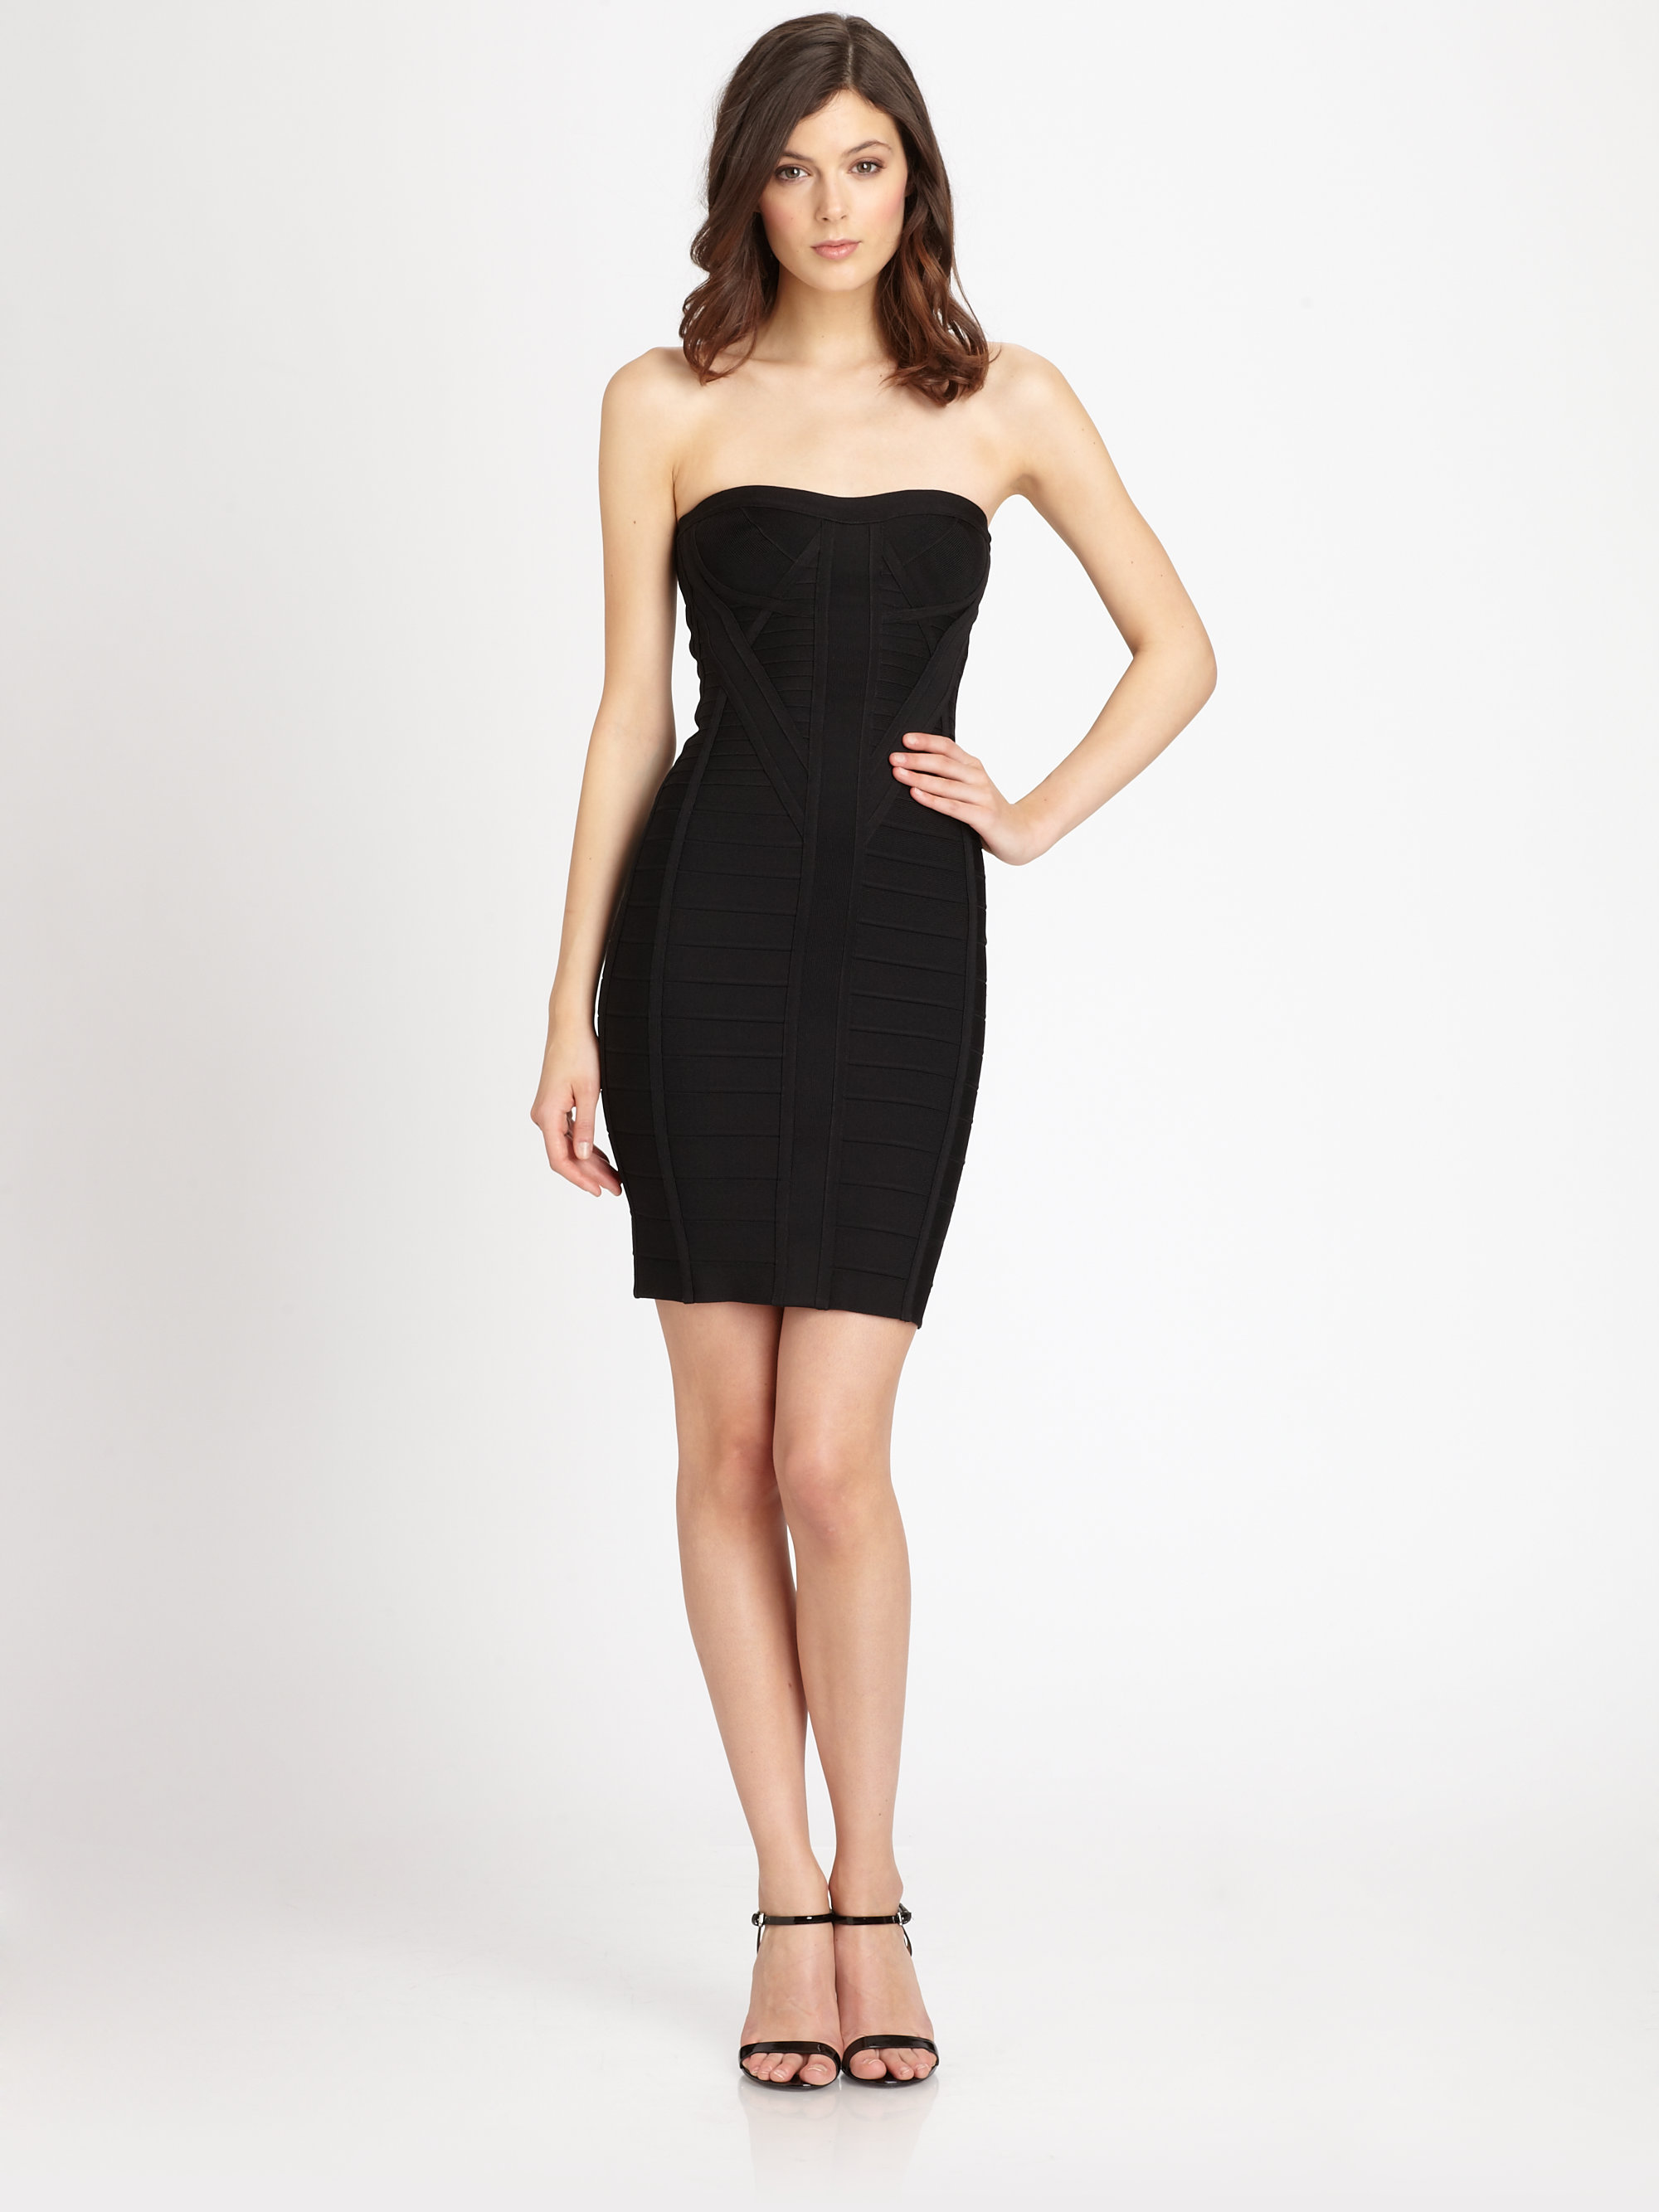 092732e9dc8c Gallery. Previously sold at  Saks Fifth Avenue · Women s Herve Leger Bandage  Women s Puff Sleeved Dresses ...